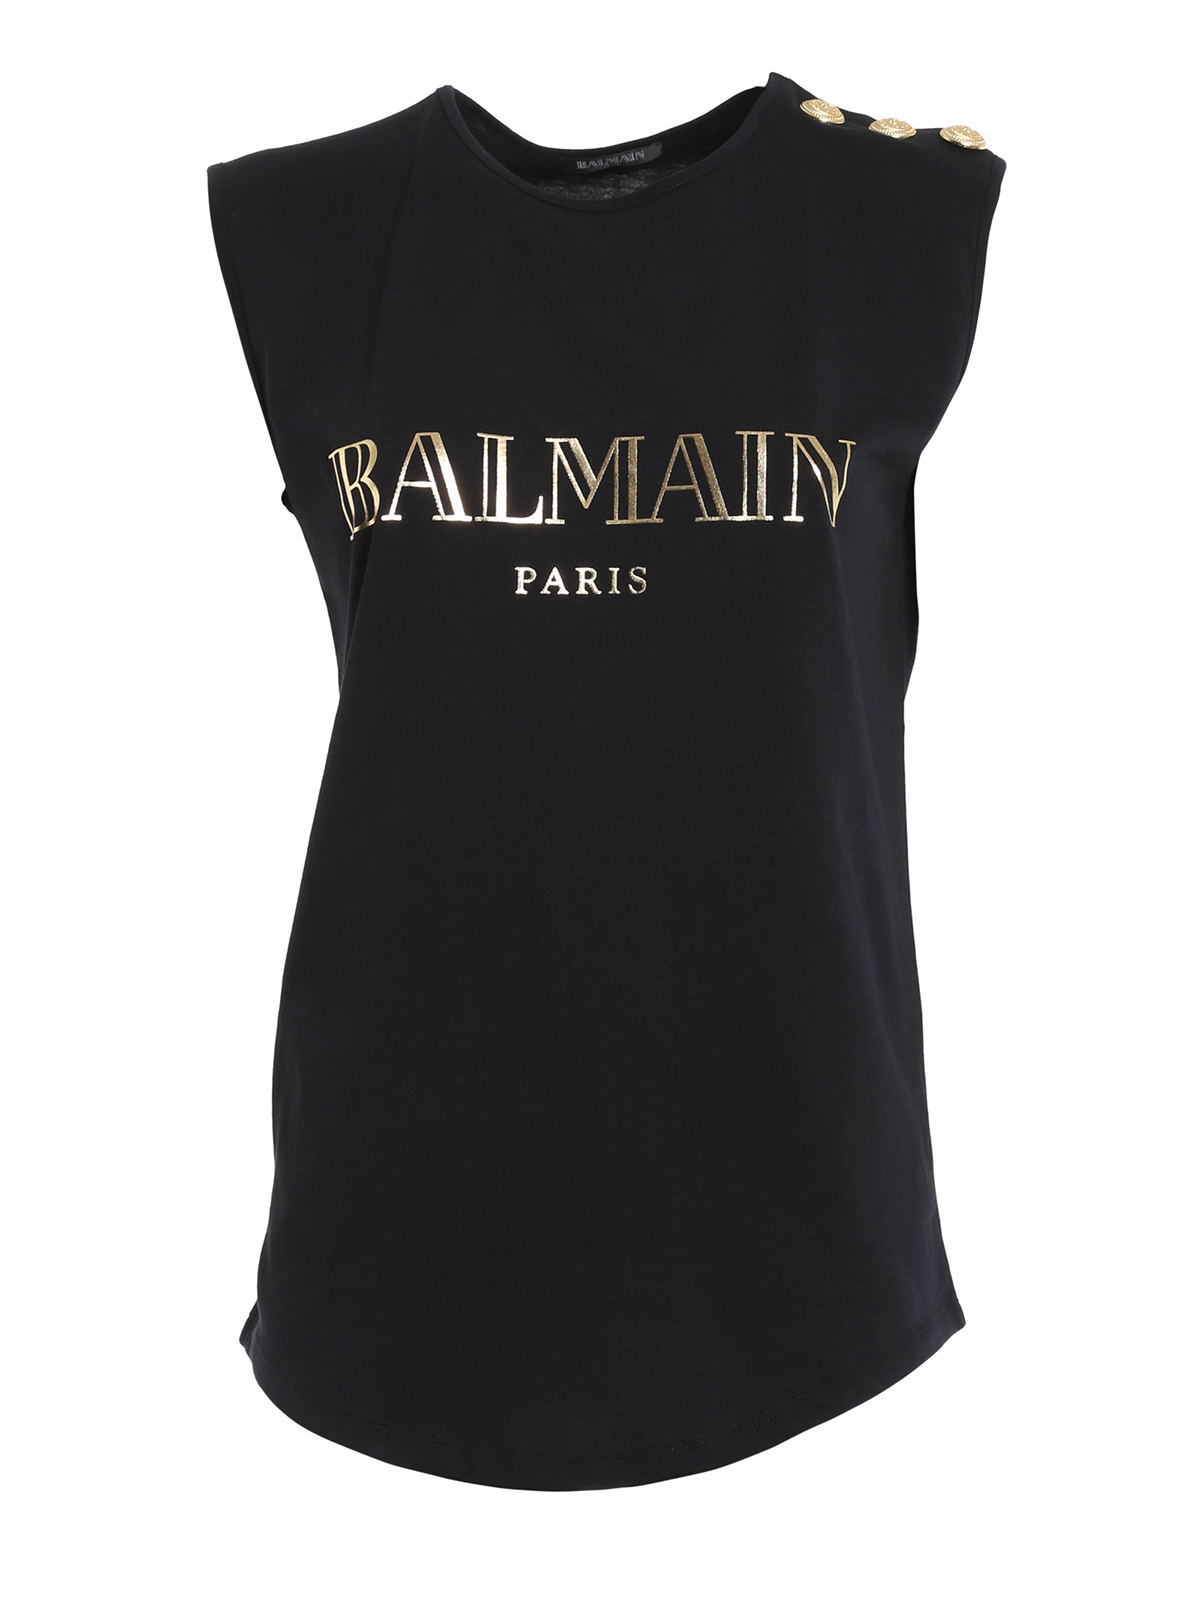 You can't miss out on Balmain's T-shirts - no laid-back look is complete without one. With classic tailoring and bold, graphic-prints to match, the brand's tops do everything a casual essential should.